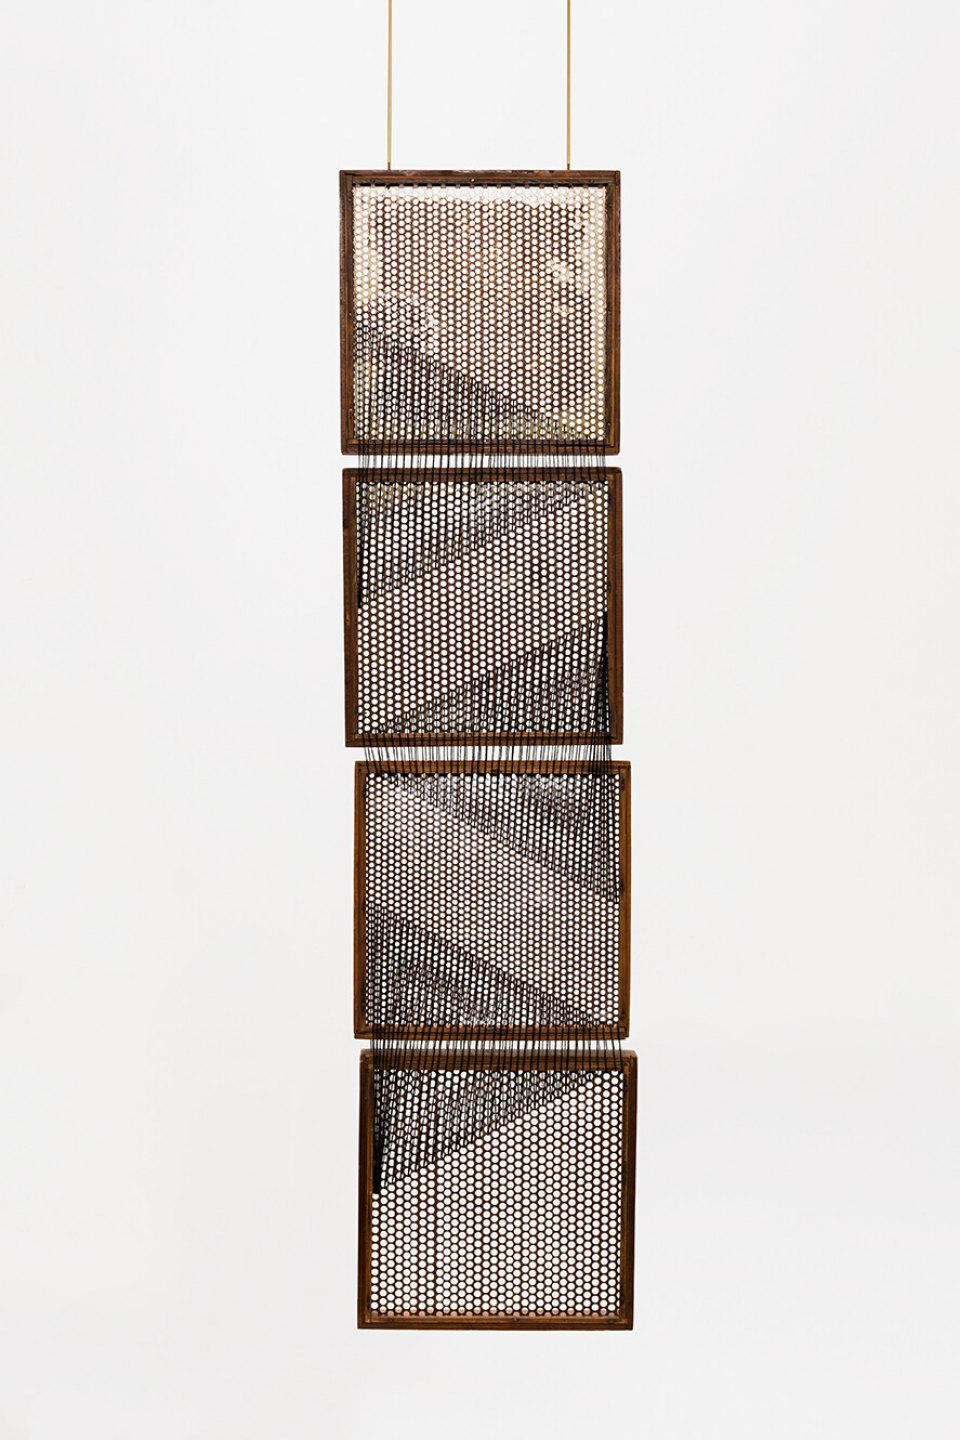 Paloma Bosquê, <em>On provisory interaction (geometry of relations #1)</em>, 2012, coffee sieve, wool and brass rods, 160 × 30 cm - Mendes Wood DM